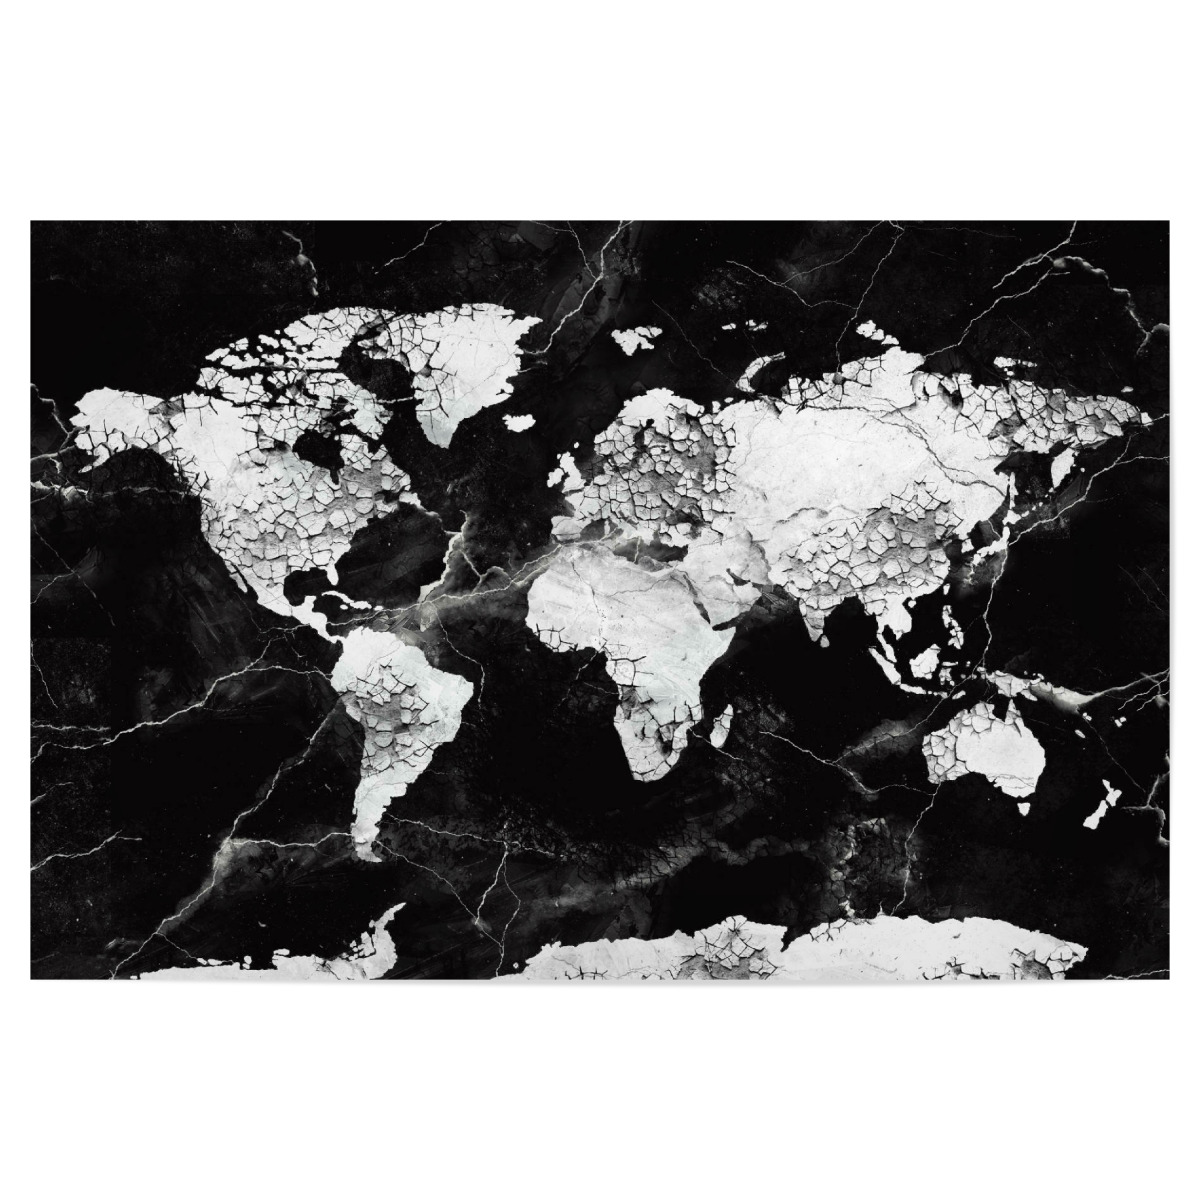 world map marble black and white 2 als Poster bei artboxONE kaufen